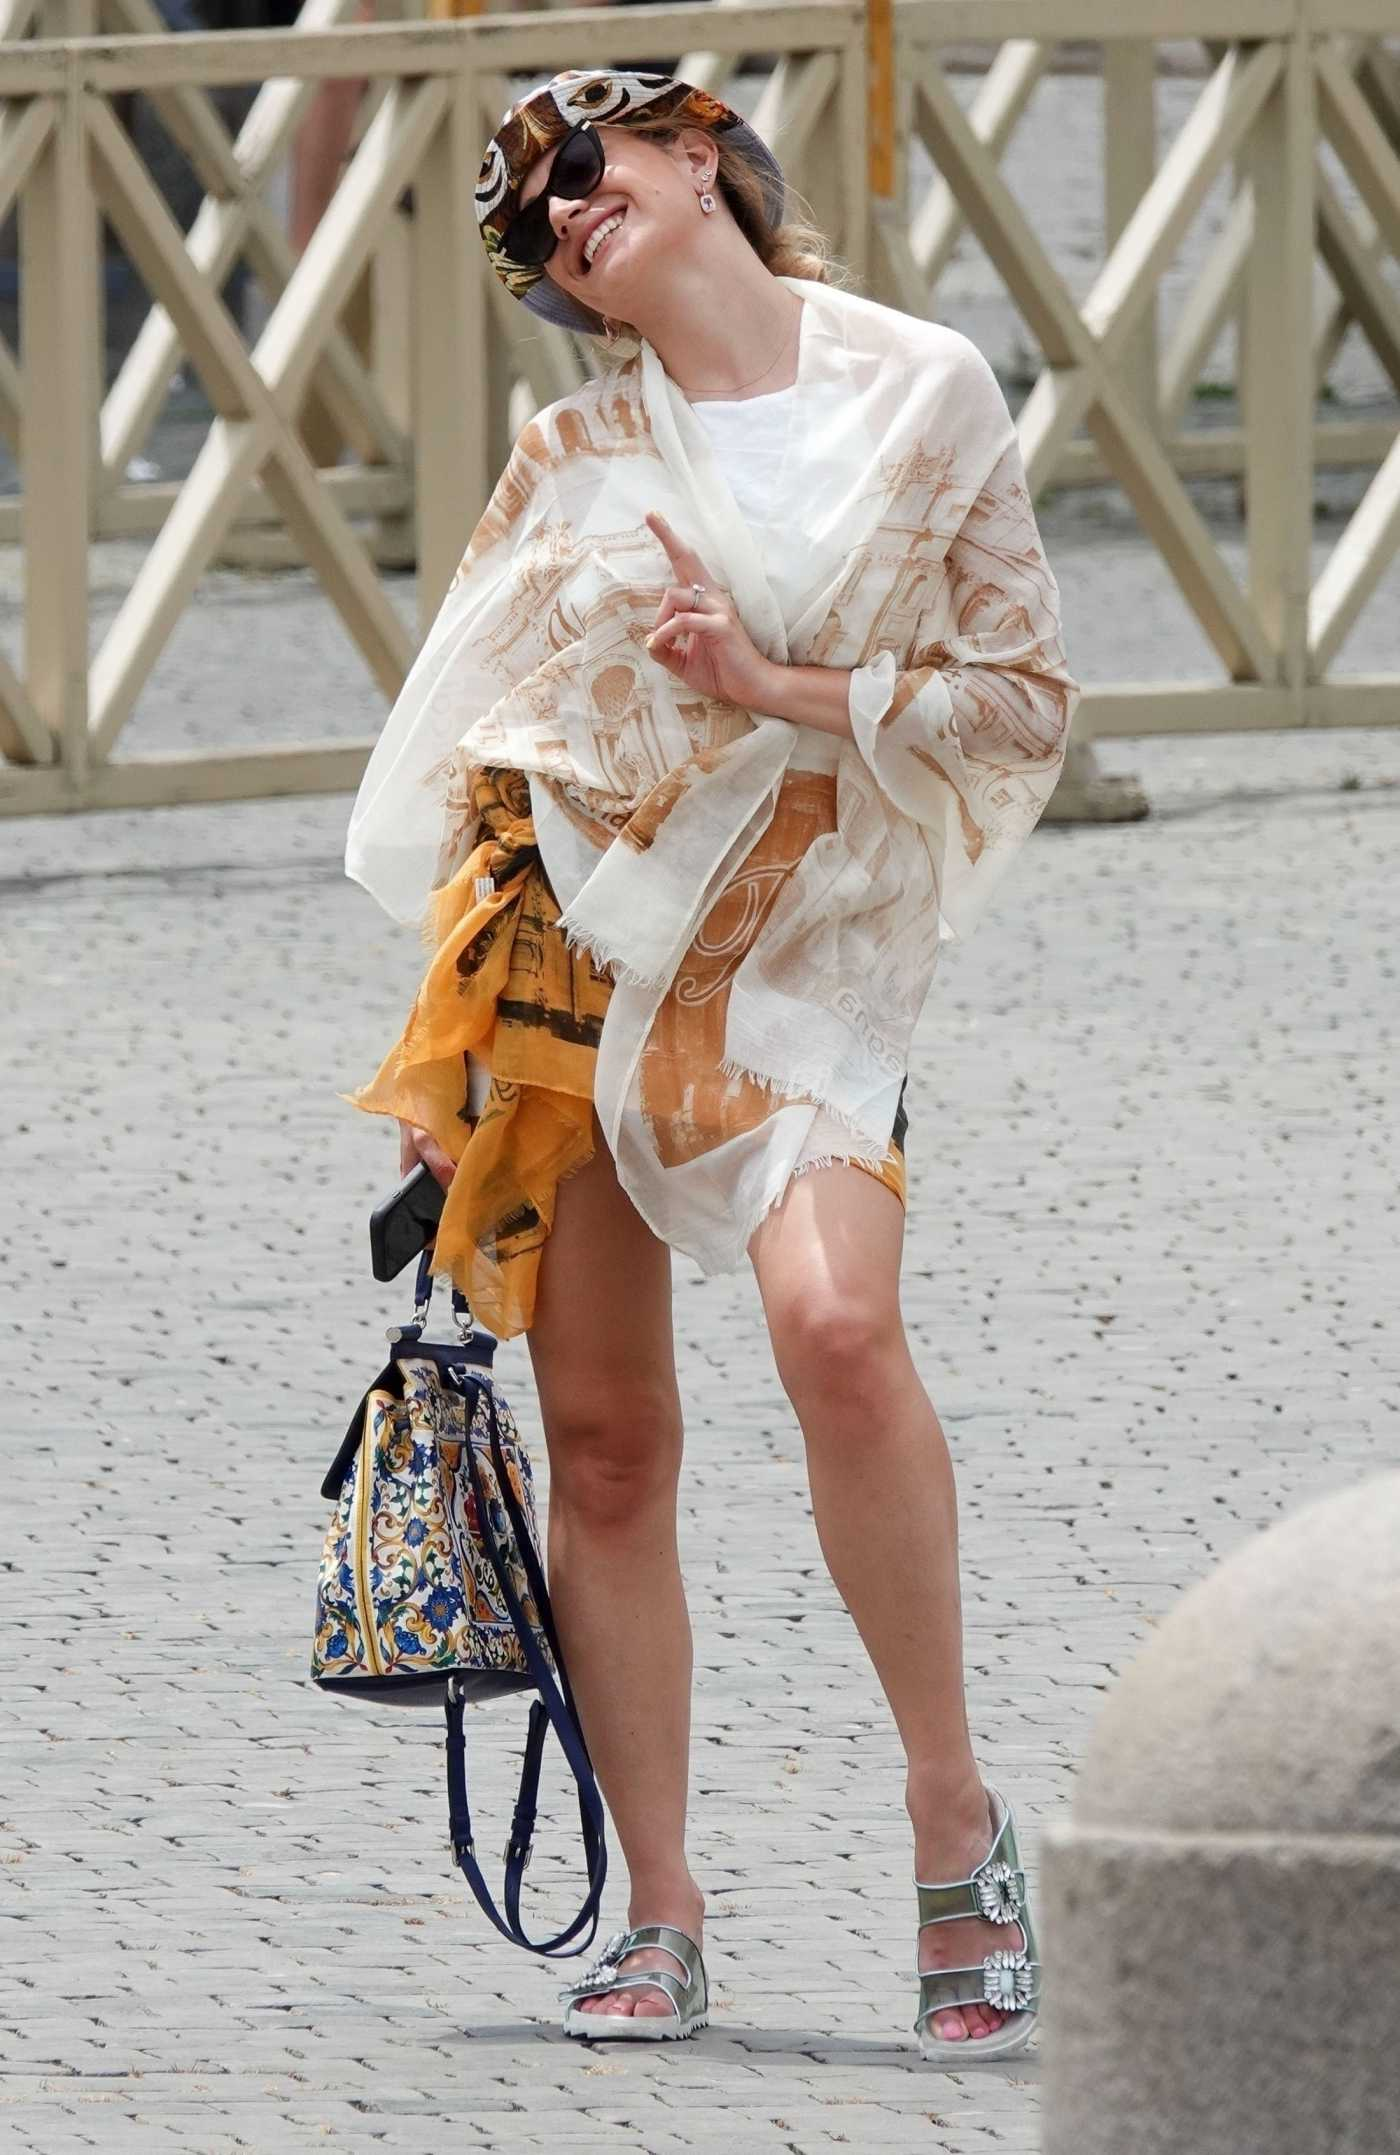 Pixie Lott in a White Top Was Seen Out in the Vatican 07/29/2021